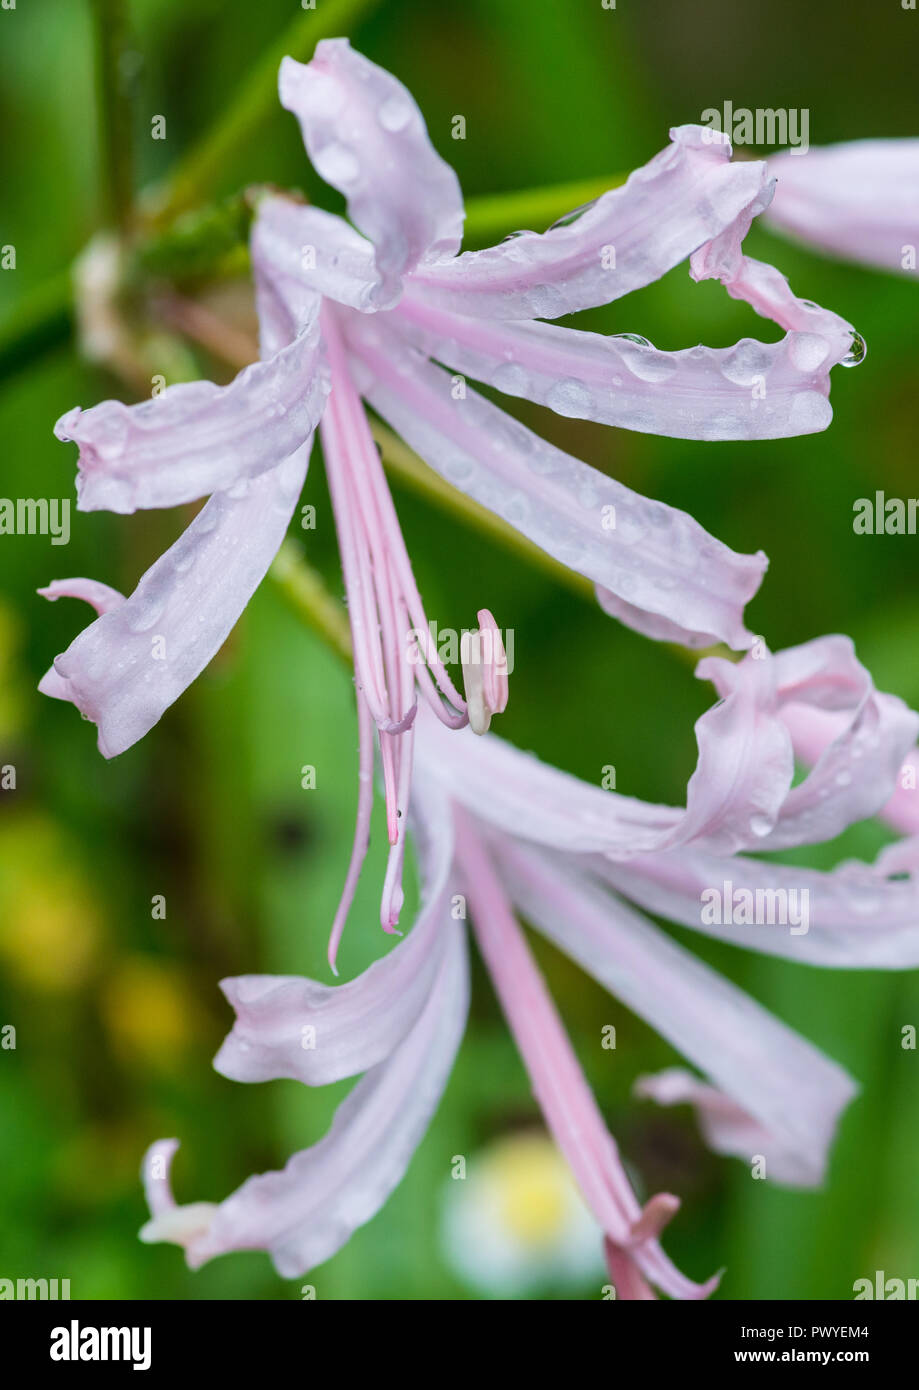 A macro shot of a pink nerine bowdenii bloom with petals covered in raindrops. - Stock Image